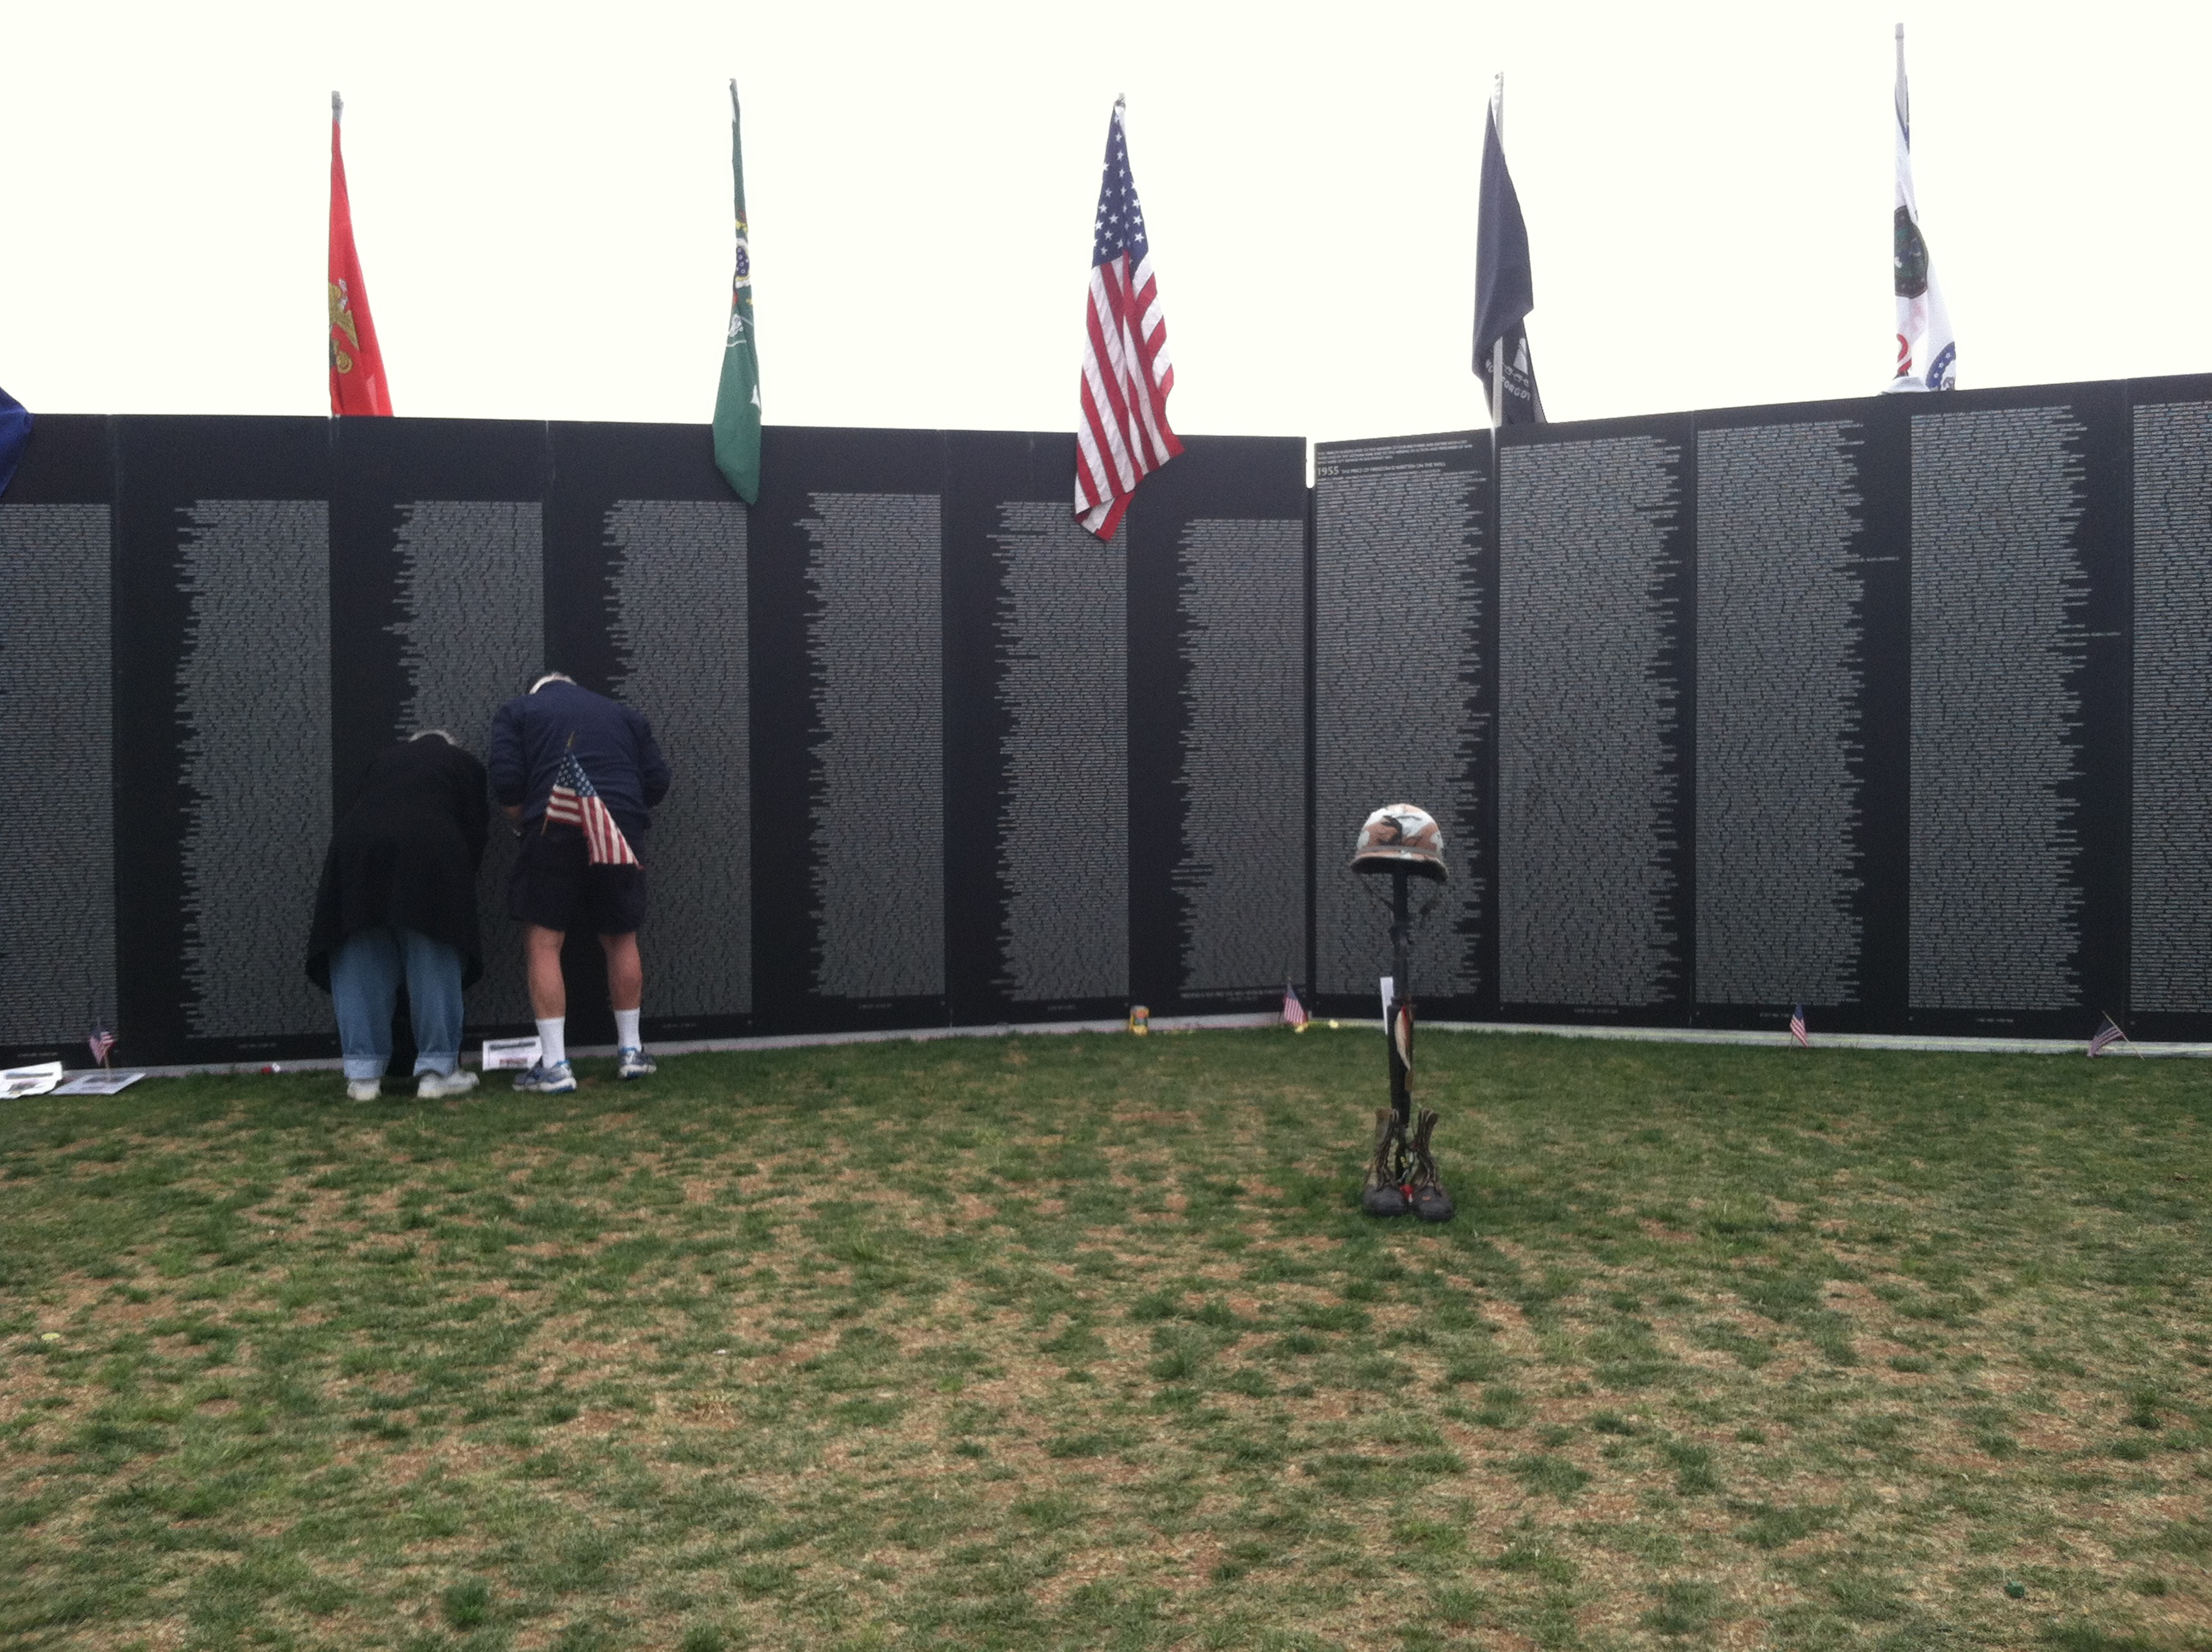 middle of the Vietnam Wall